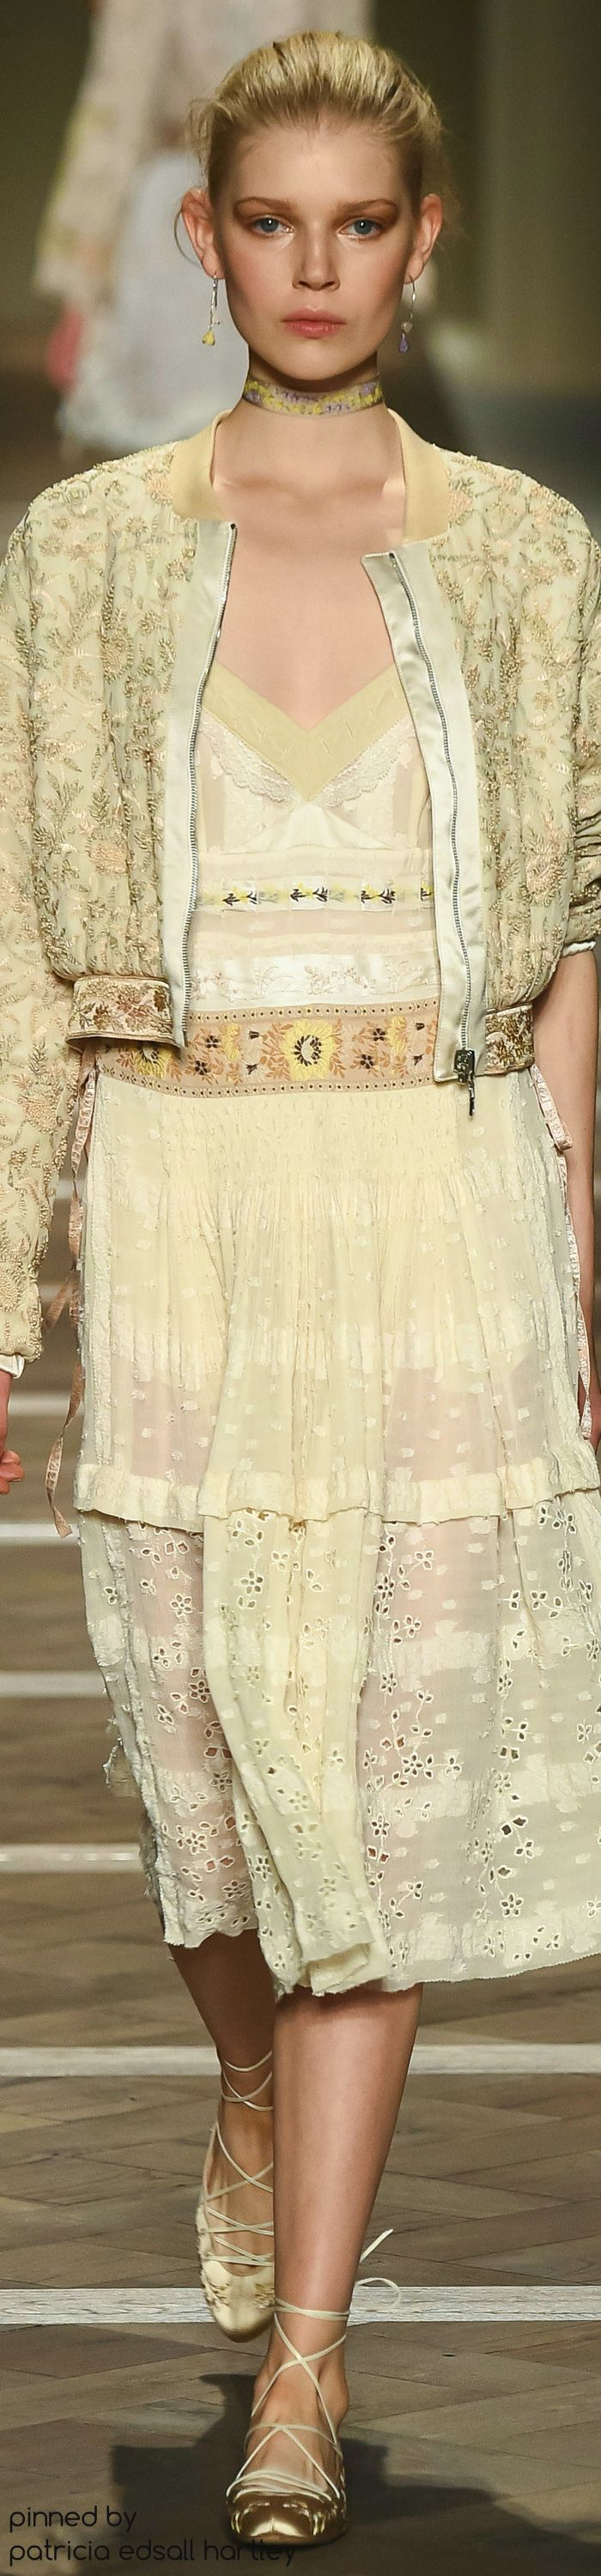 SPRING 2016 READY-TO-WEAR Etro